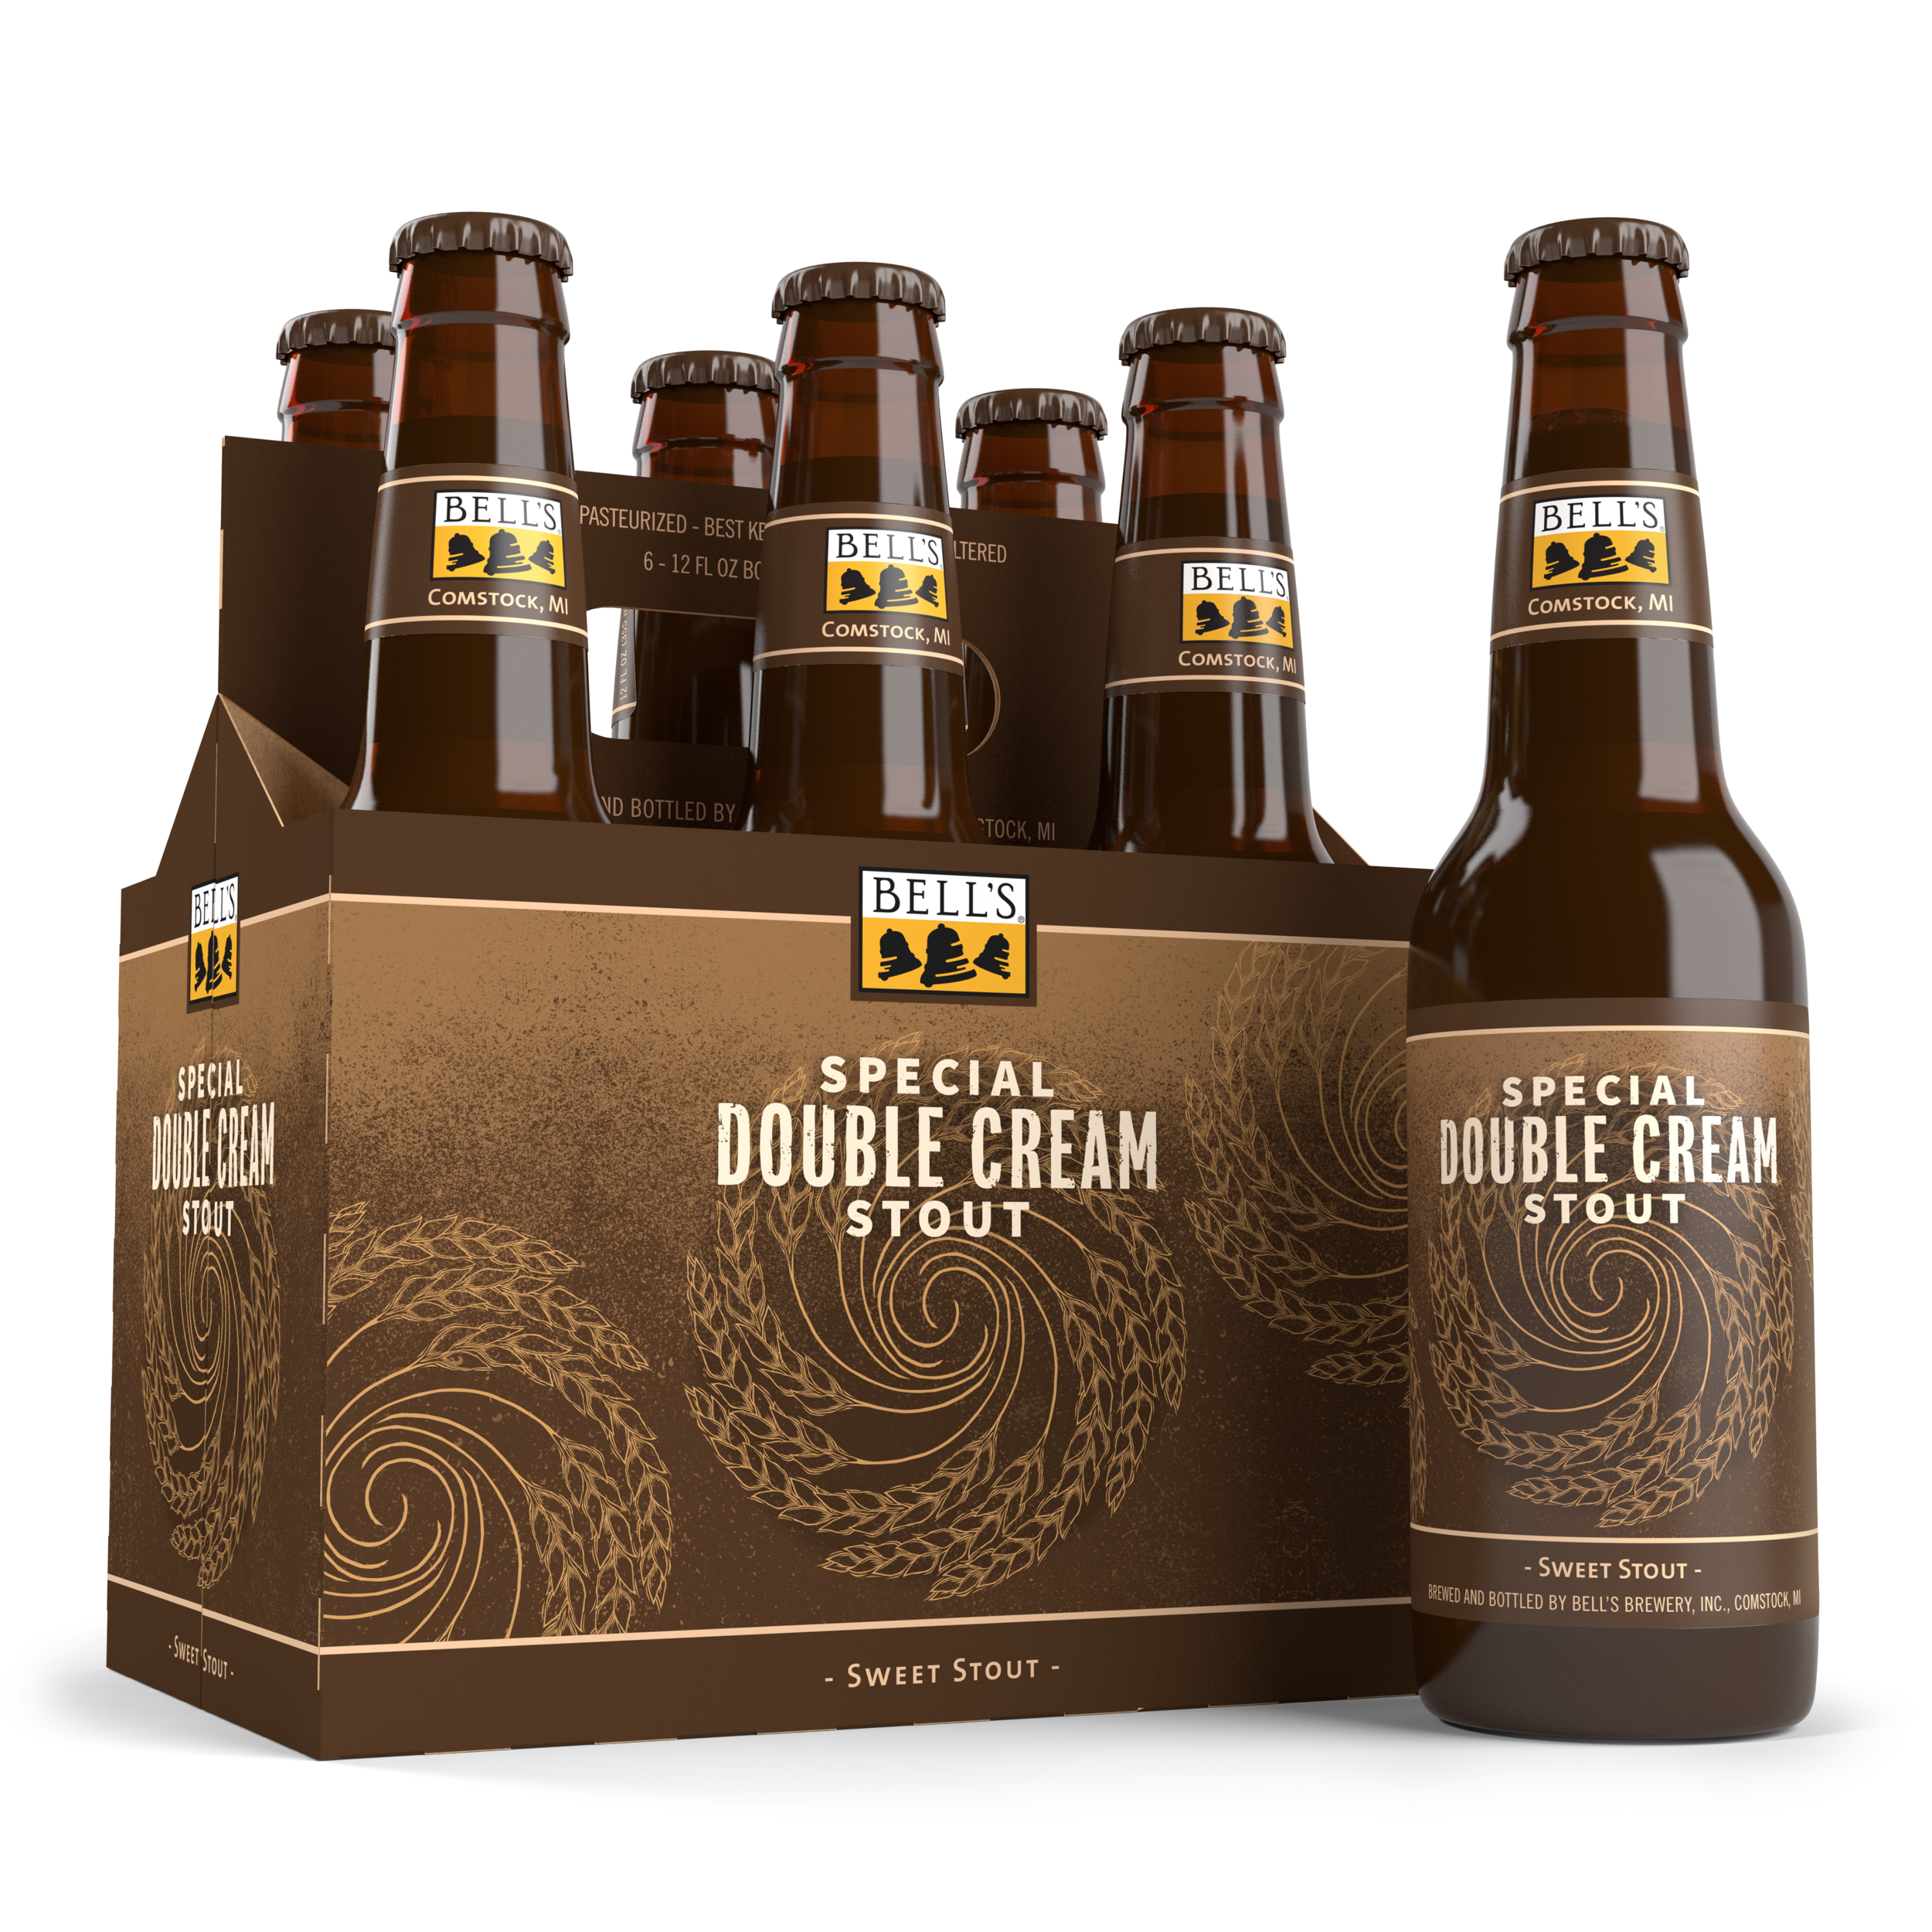 Bell's Special Double Cream Stout Bottles